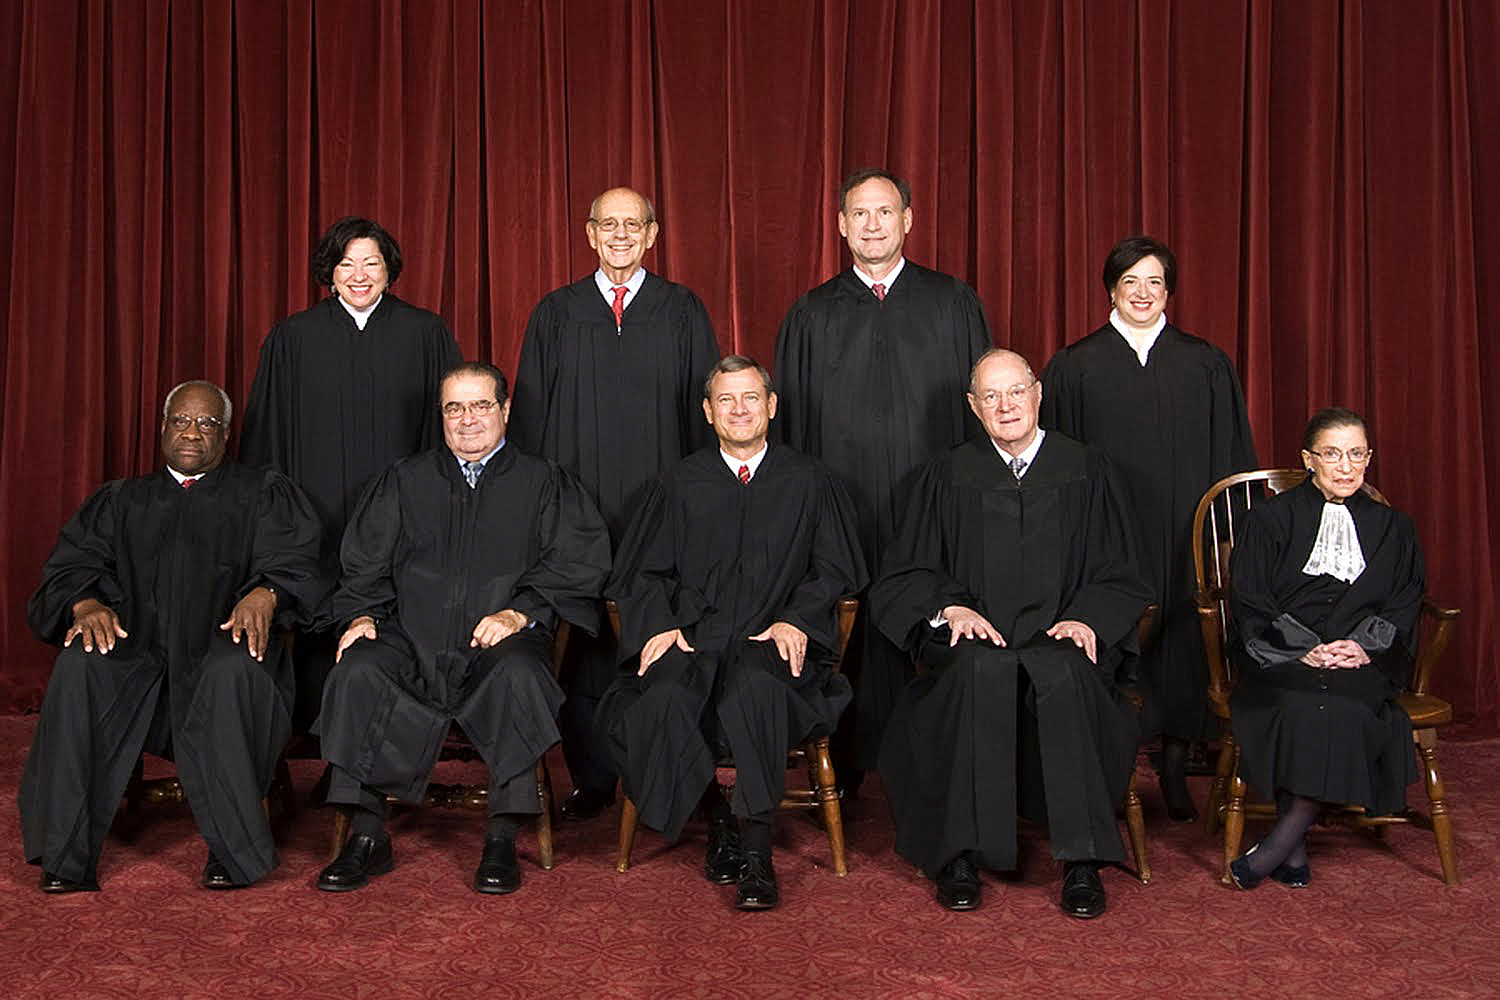 List of Justices of the Supreme Court of the United States ...